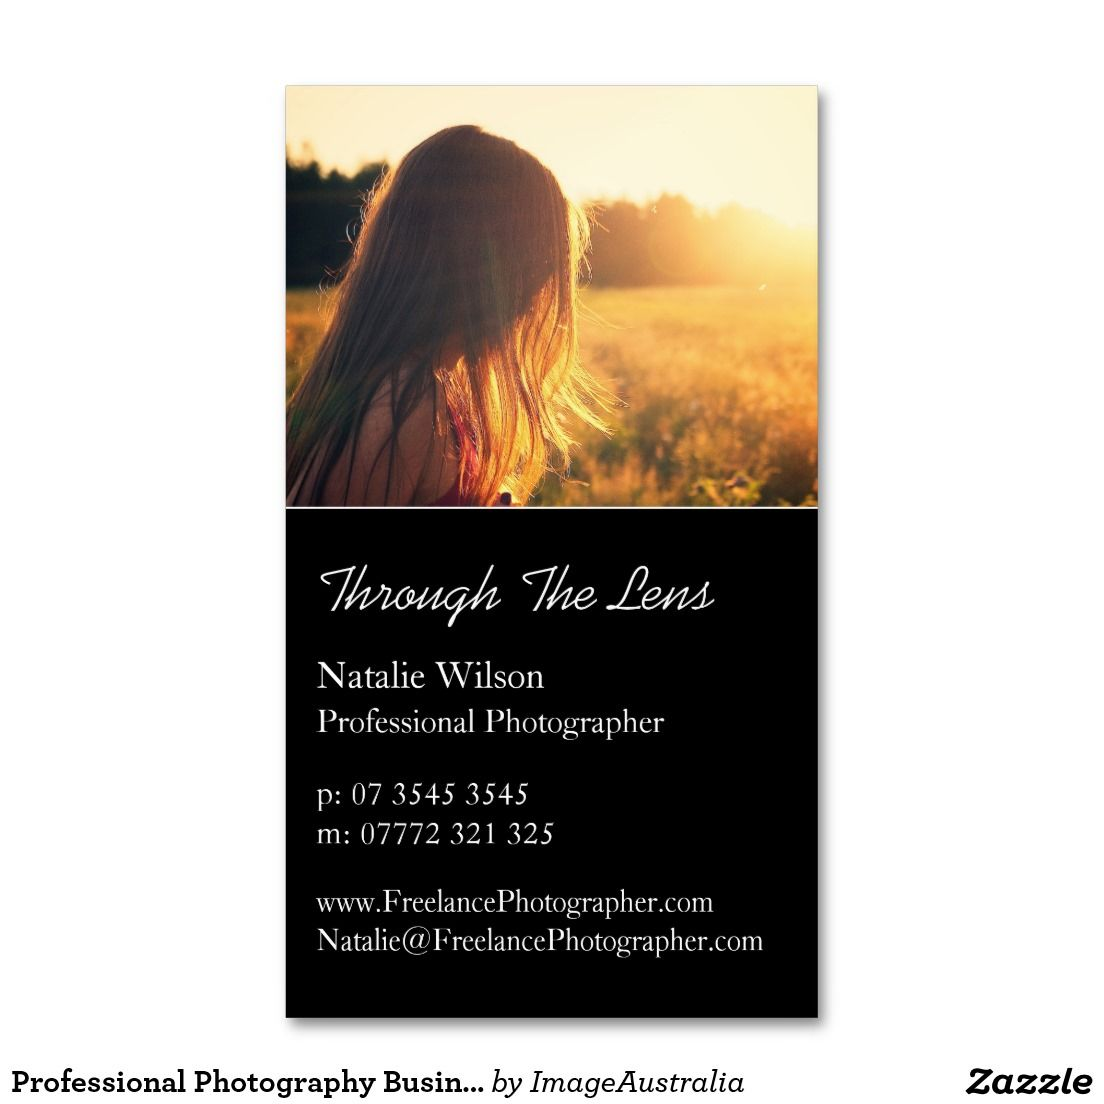 Professional Photography Business Card | Photography, Photography ...